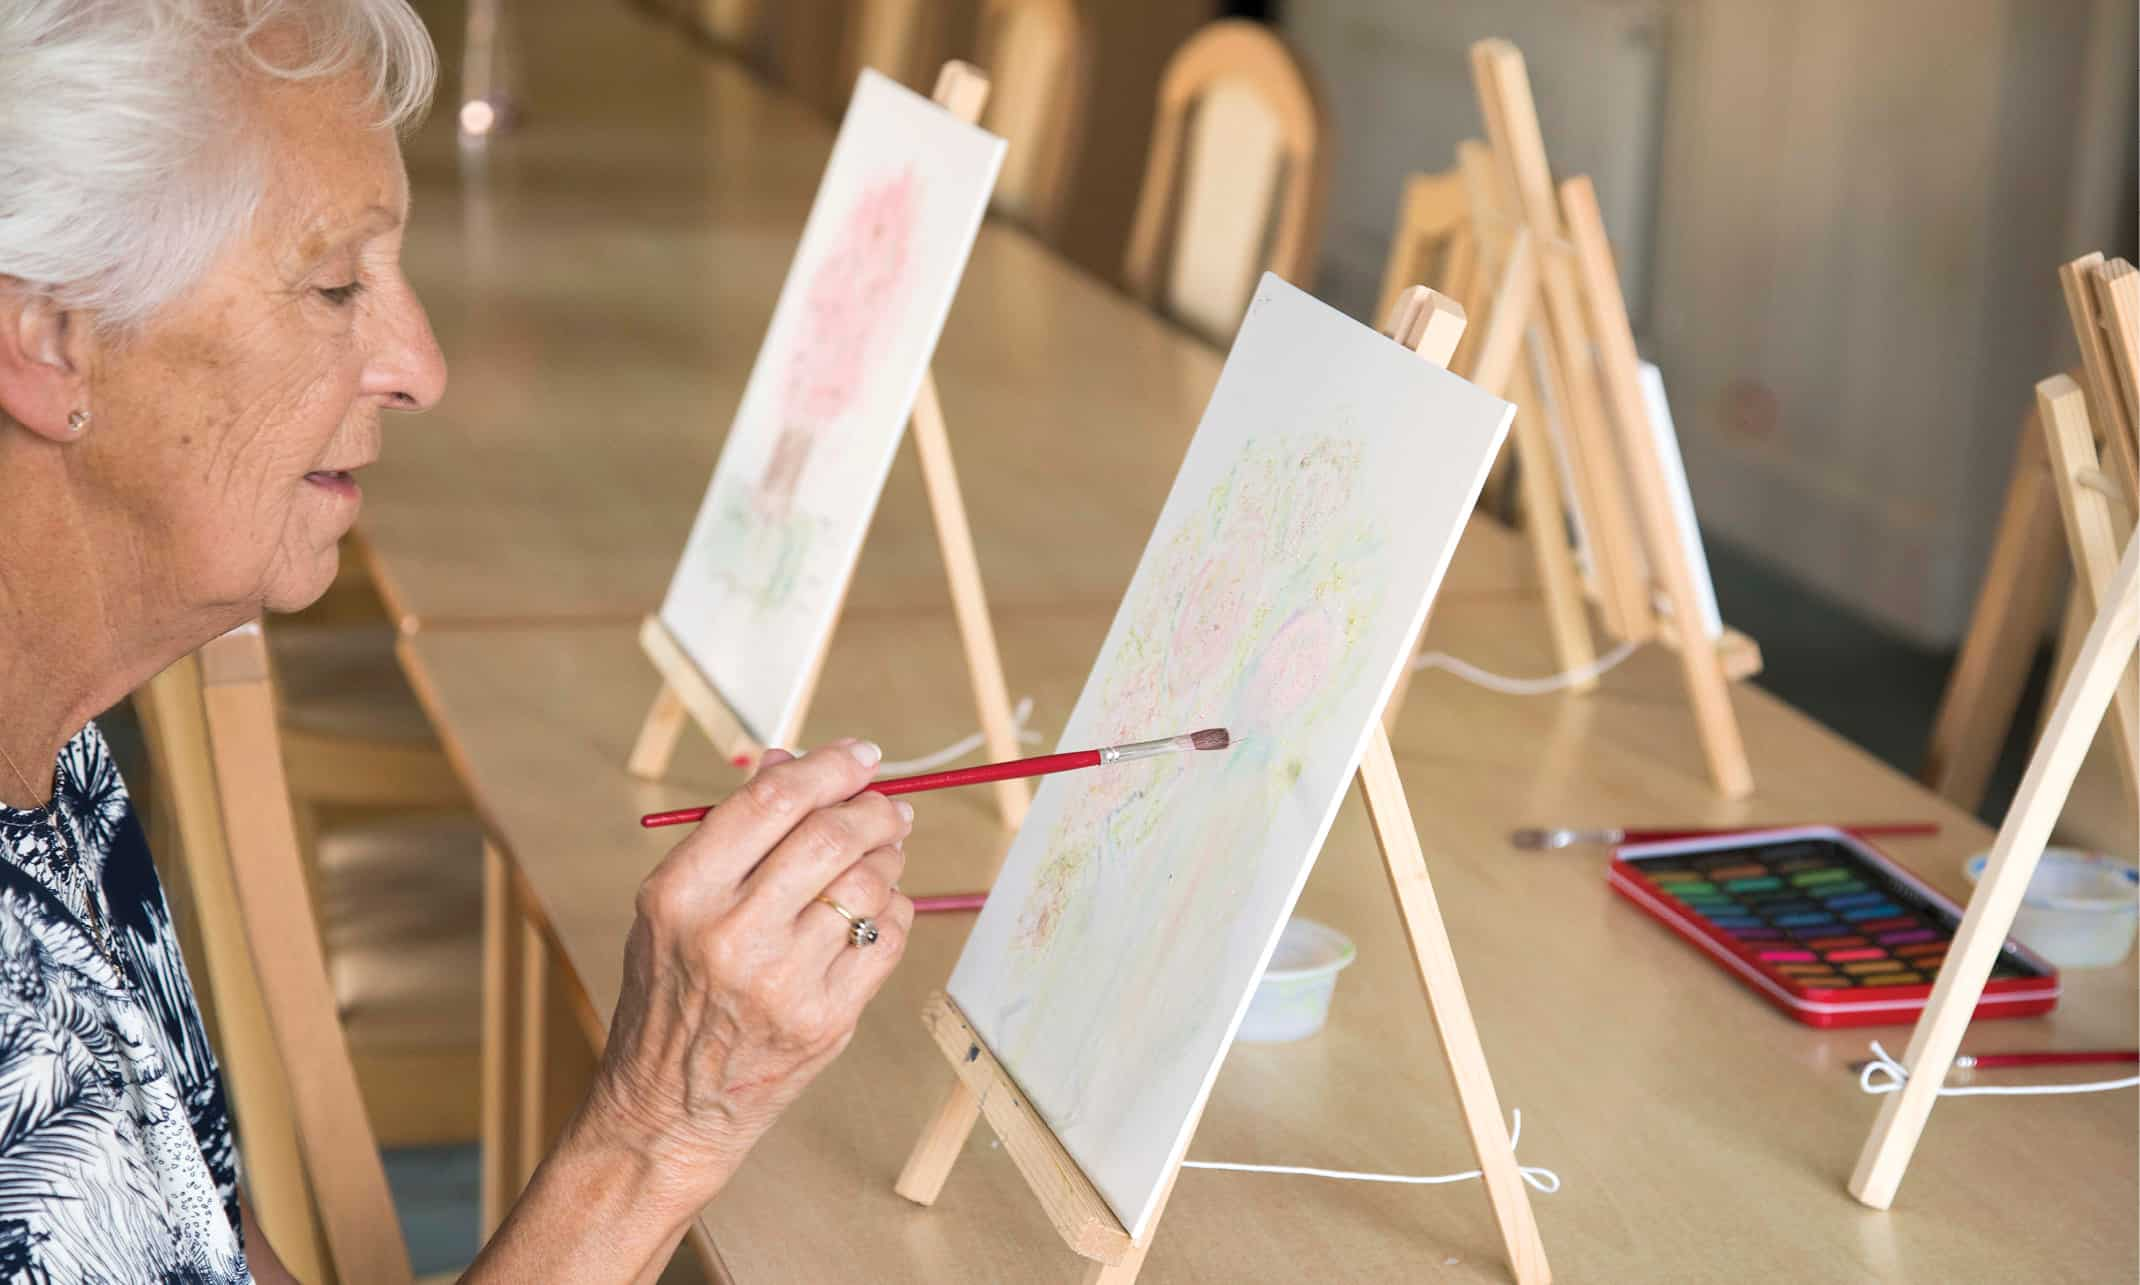 Wellbeing - Lady painting at St Vincent's